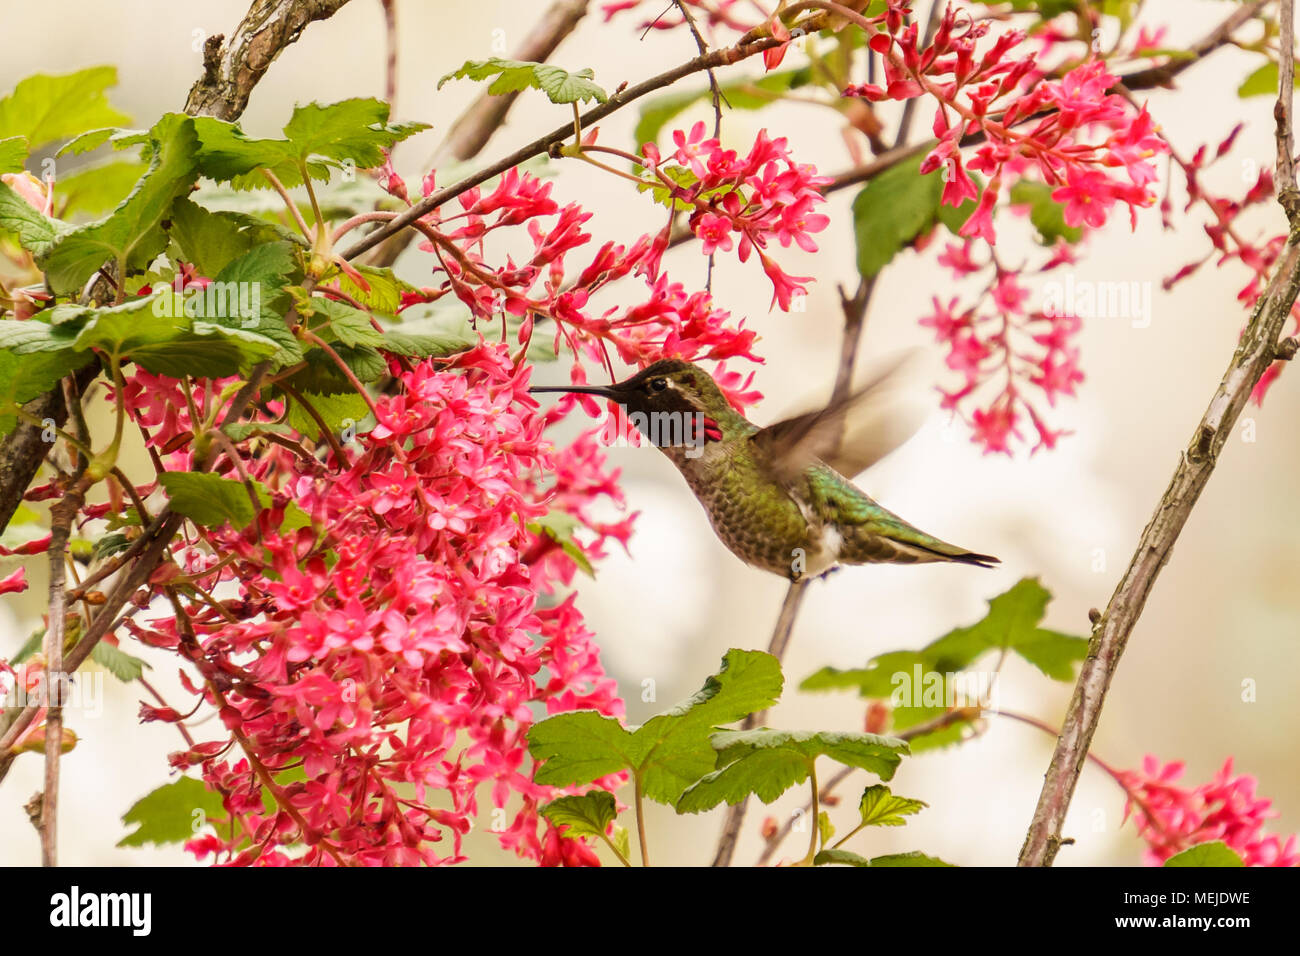 Annas Hummingbird feeding on nectar from a flowering Red Currant - Stock Image